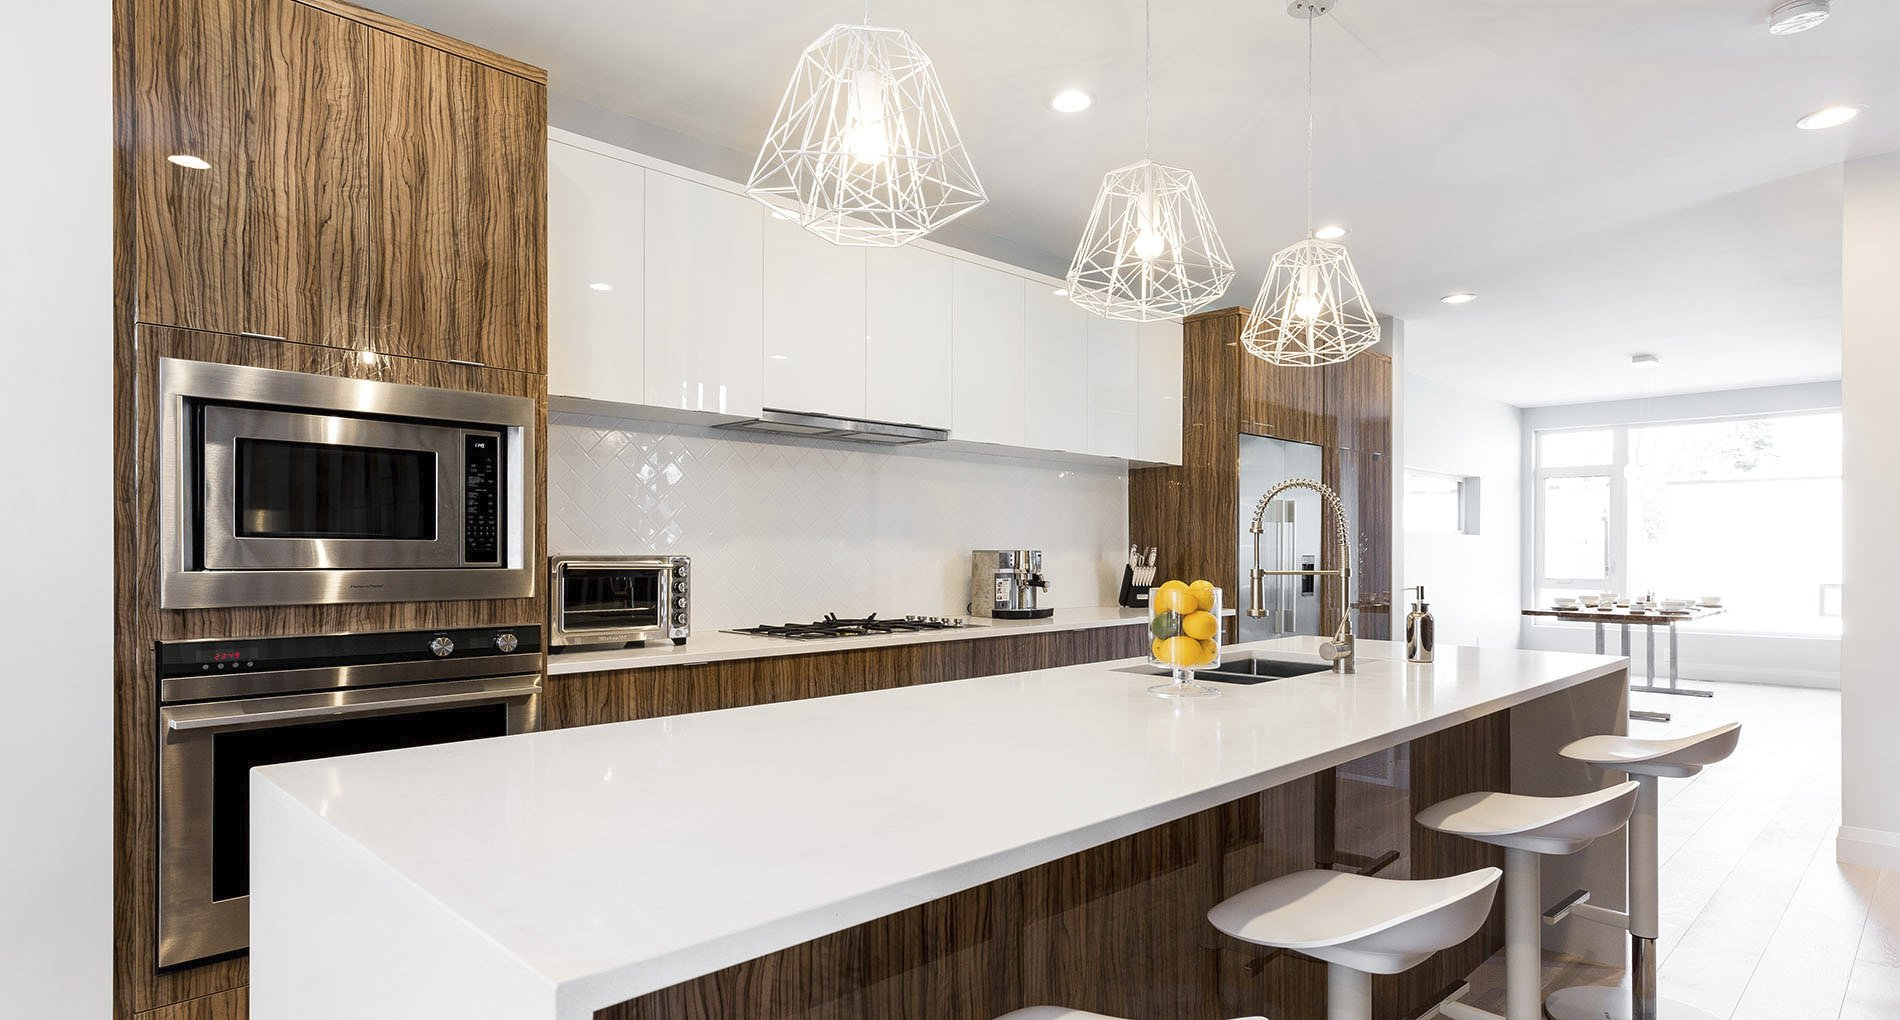 Kitchen with glossy white finishings and wood accents and custom white geometric overhead lighting fixtures.